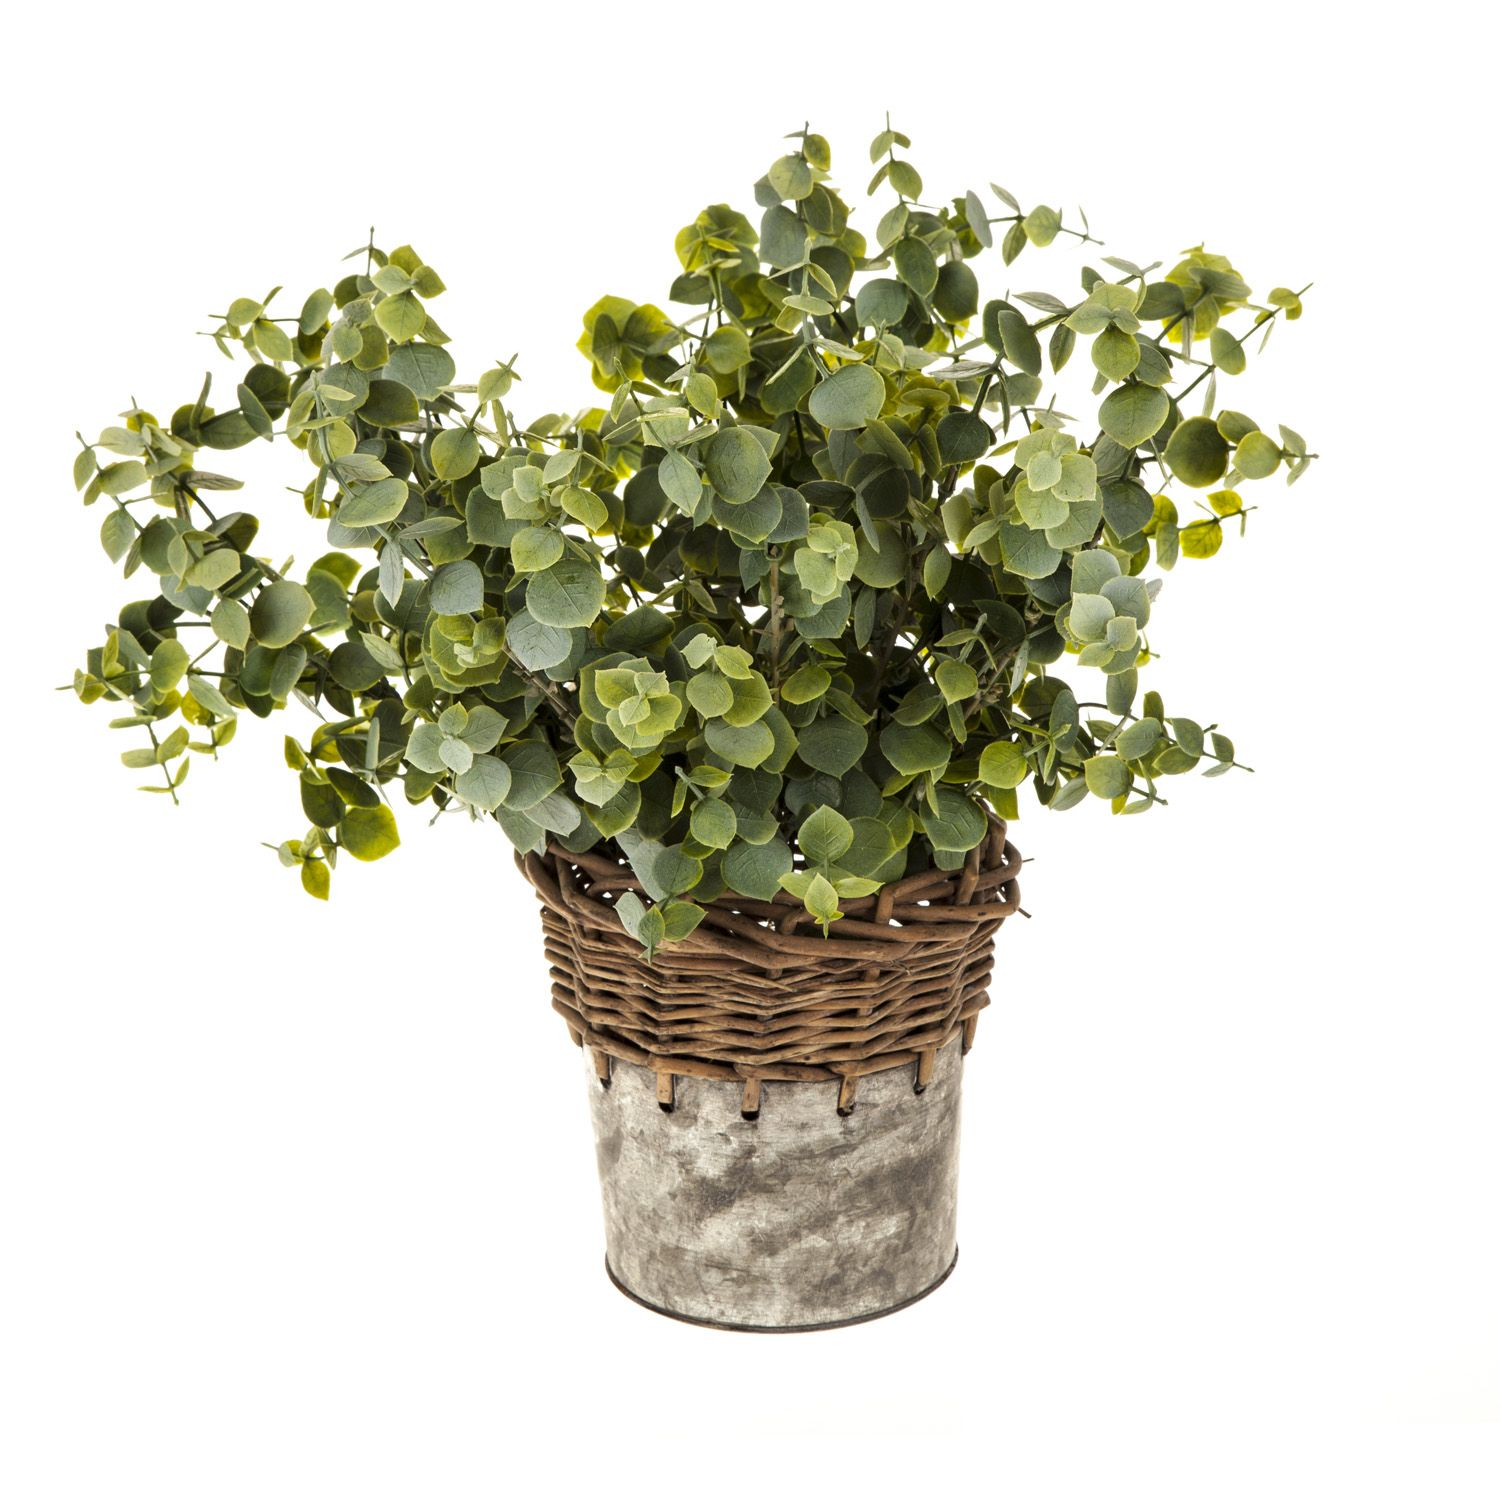 Eucalyptus In A Galvanised Pot Small artificial plants